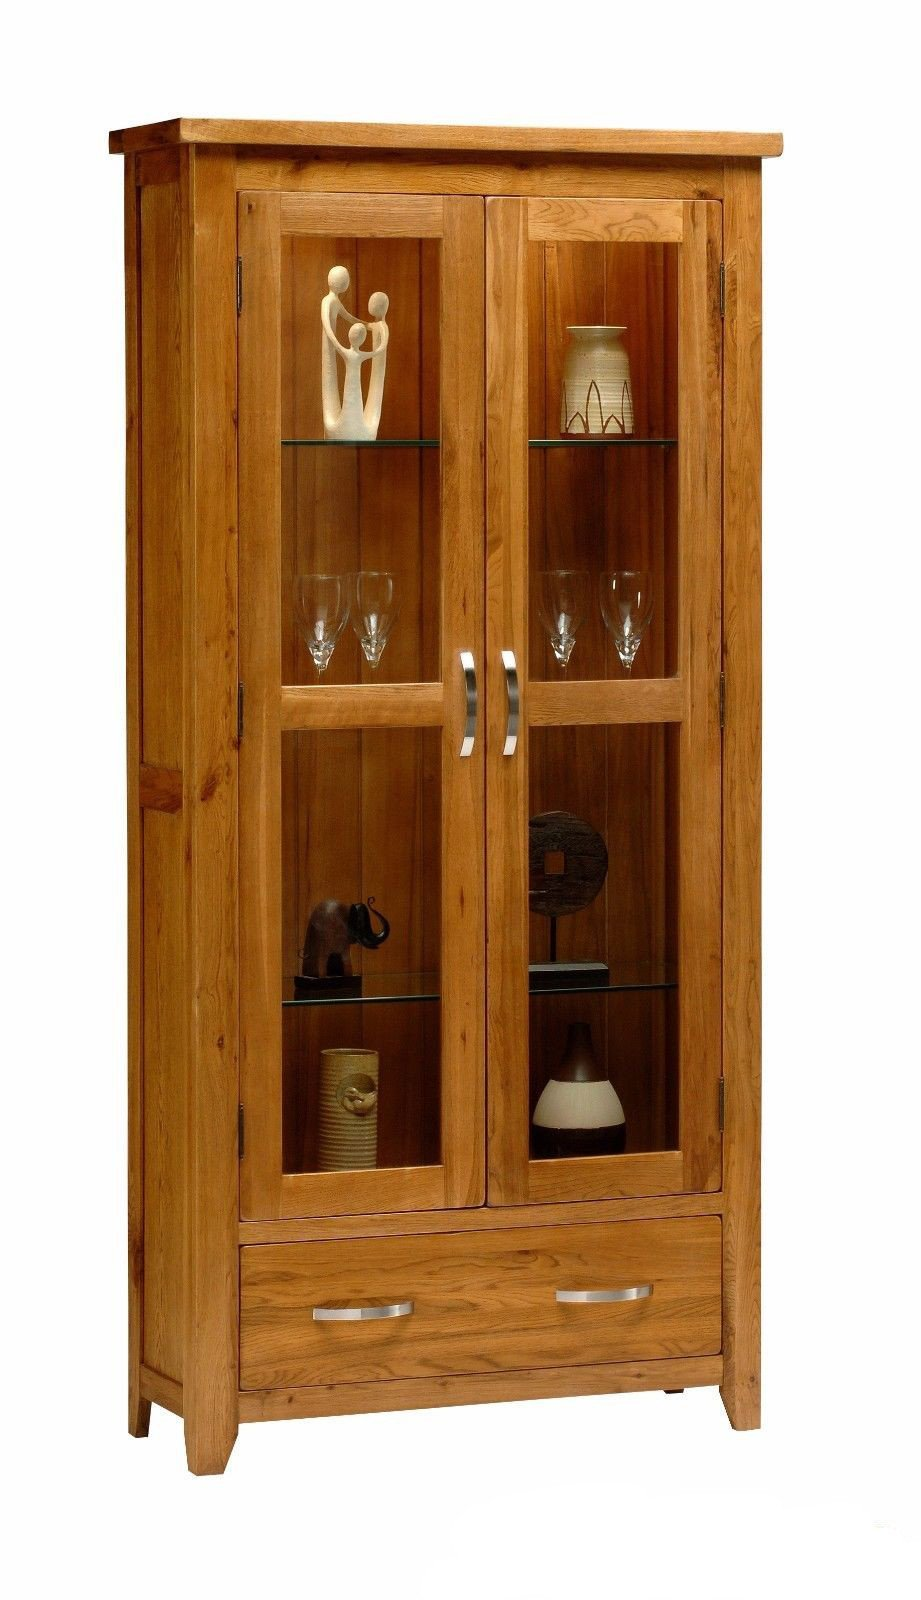 Wessex Country Oak Two Door Glass Display - Oak Village